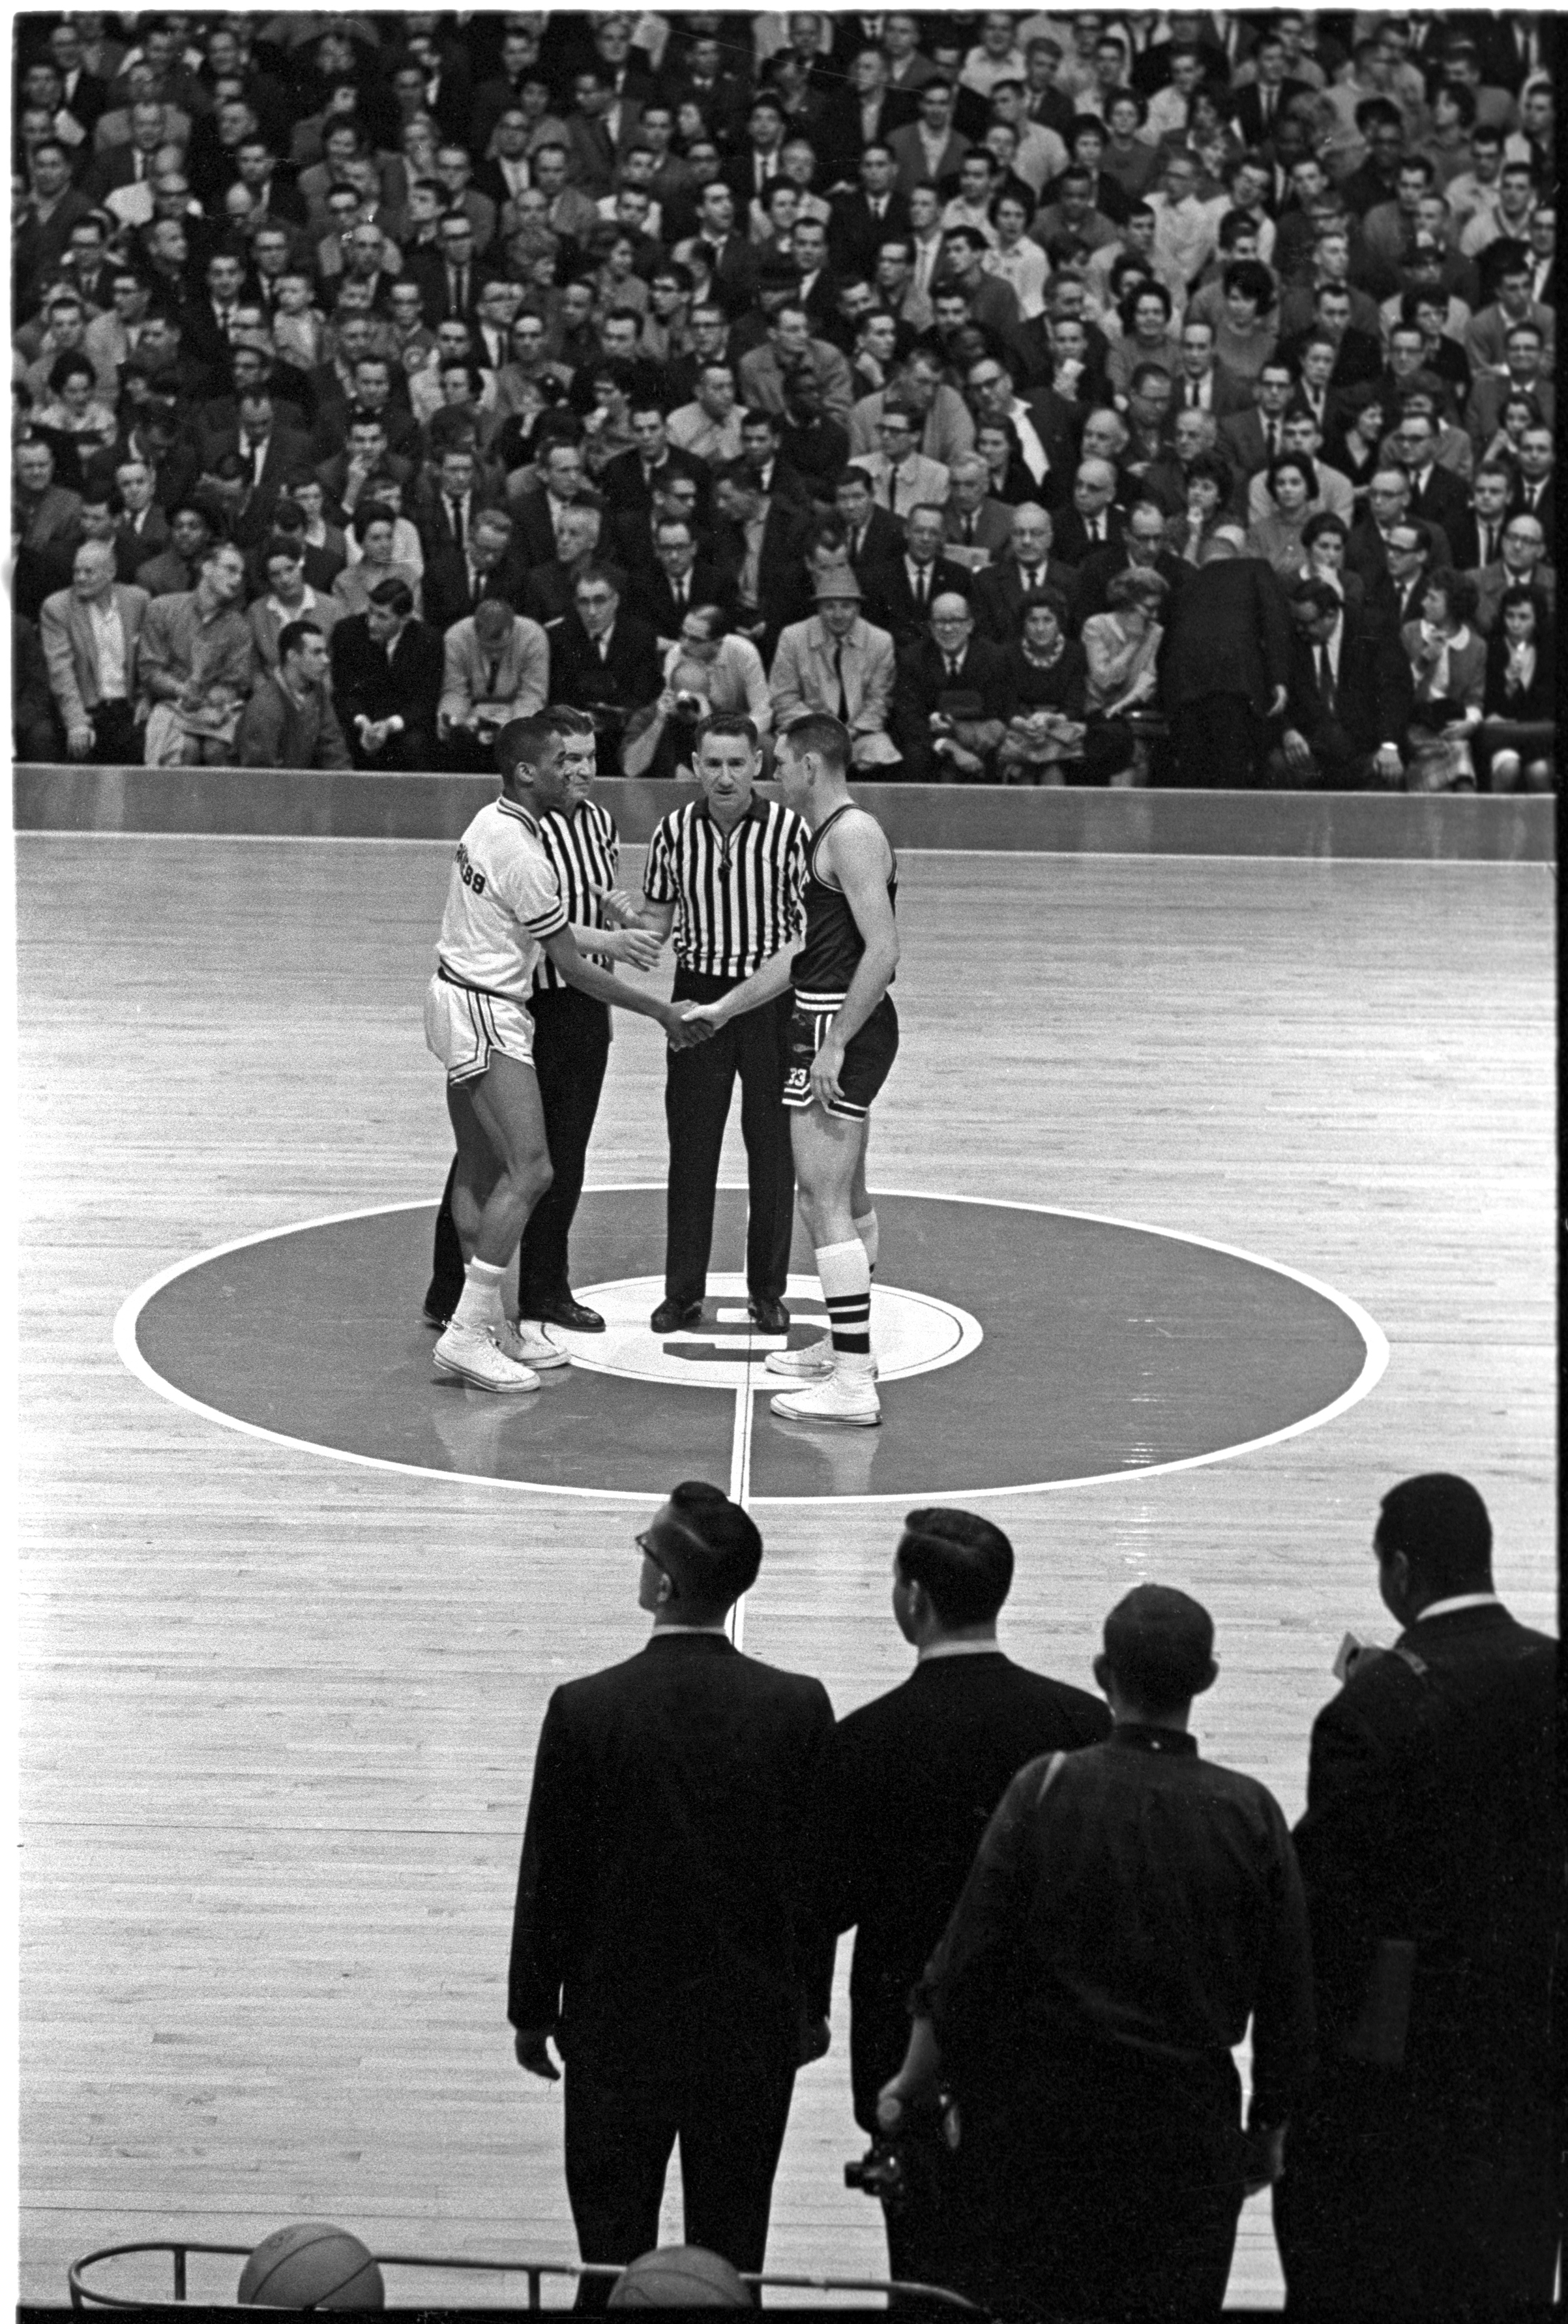 Loyola player Jerry Harkness extends his hand to Joe Dan Gold of Mississippi State on March 15, 1963, before the tip-off of an NCAA tournament game in East Lansing, Michigan.